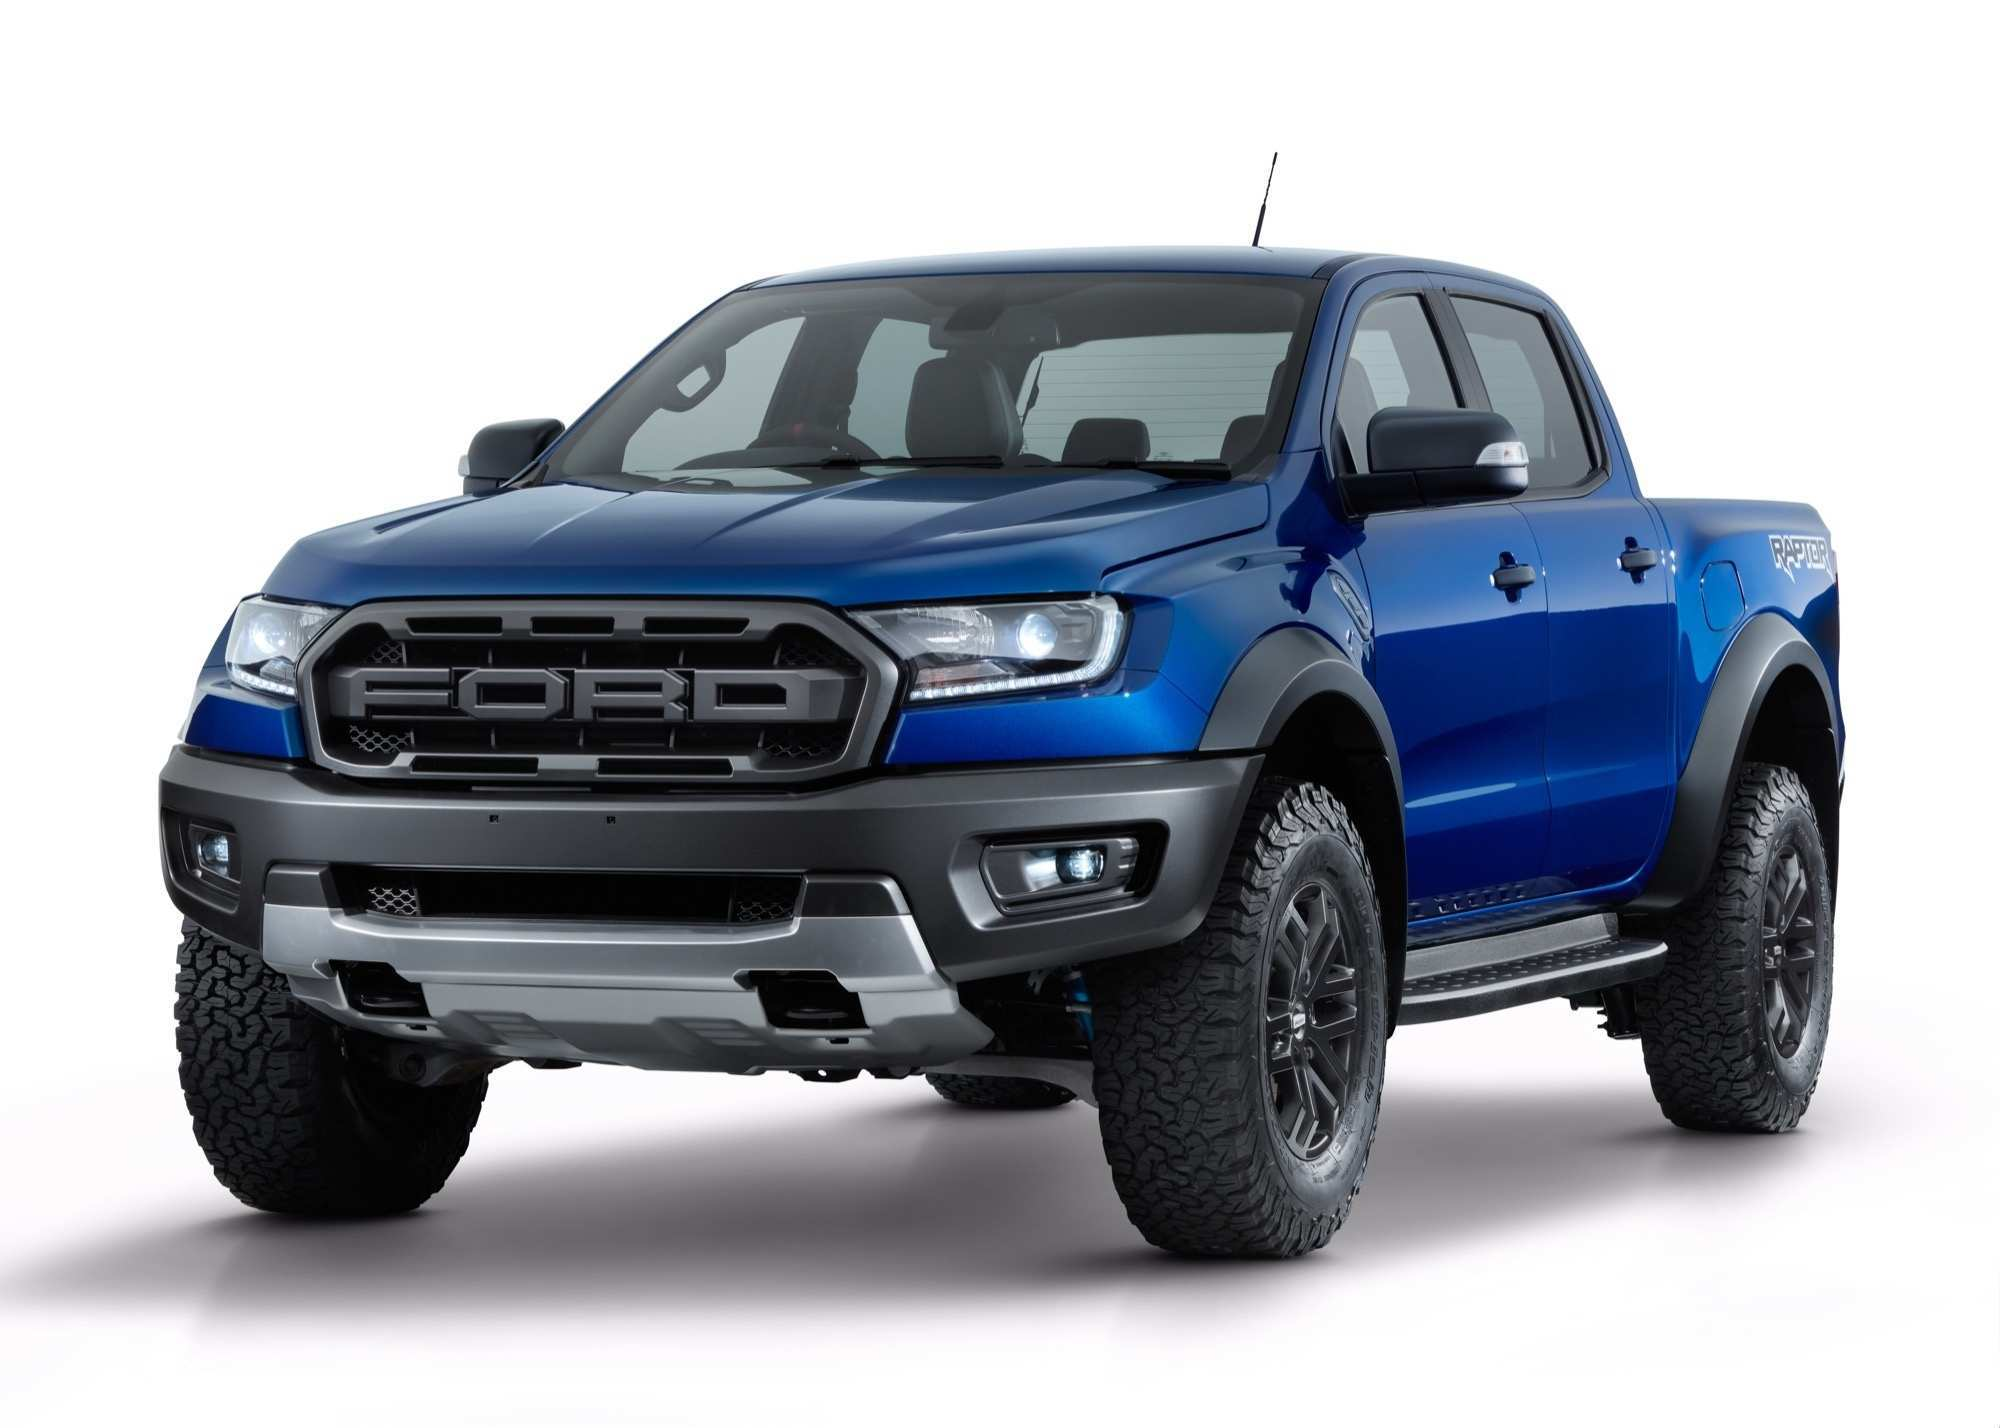 66 All New 2019 Ford Ranger Usa Price Redesign for 2019 Ford Ranger Usa Price